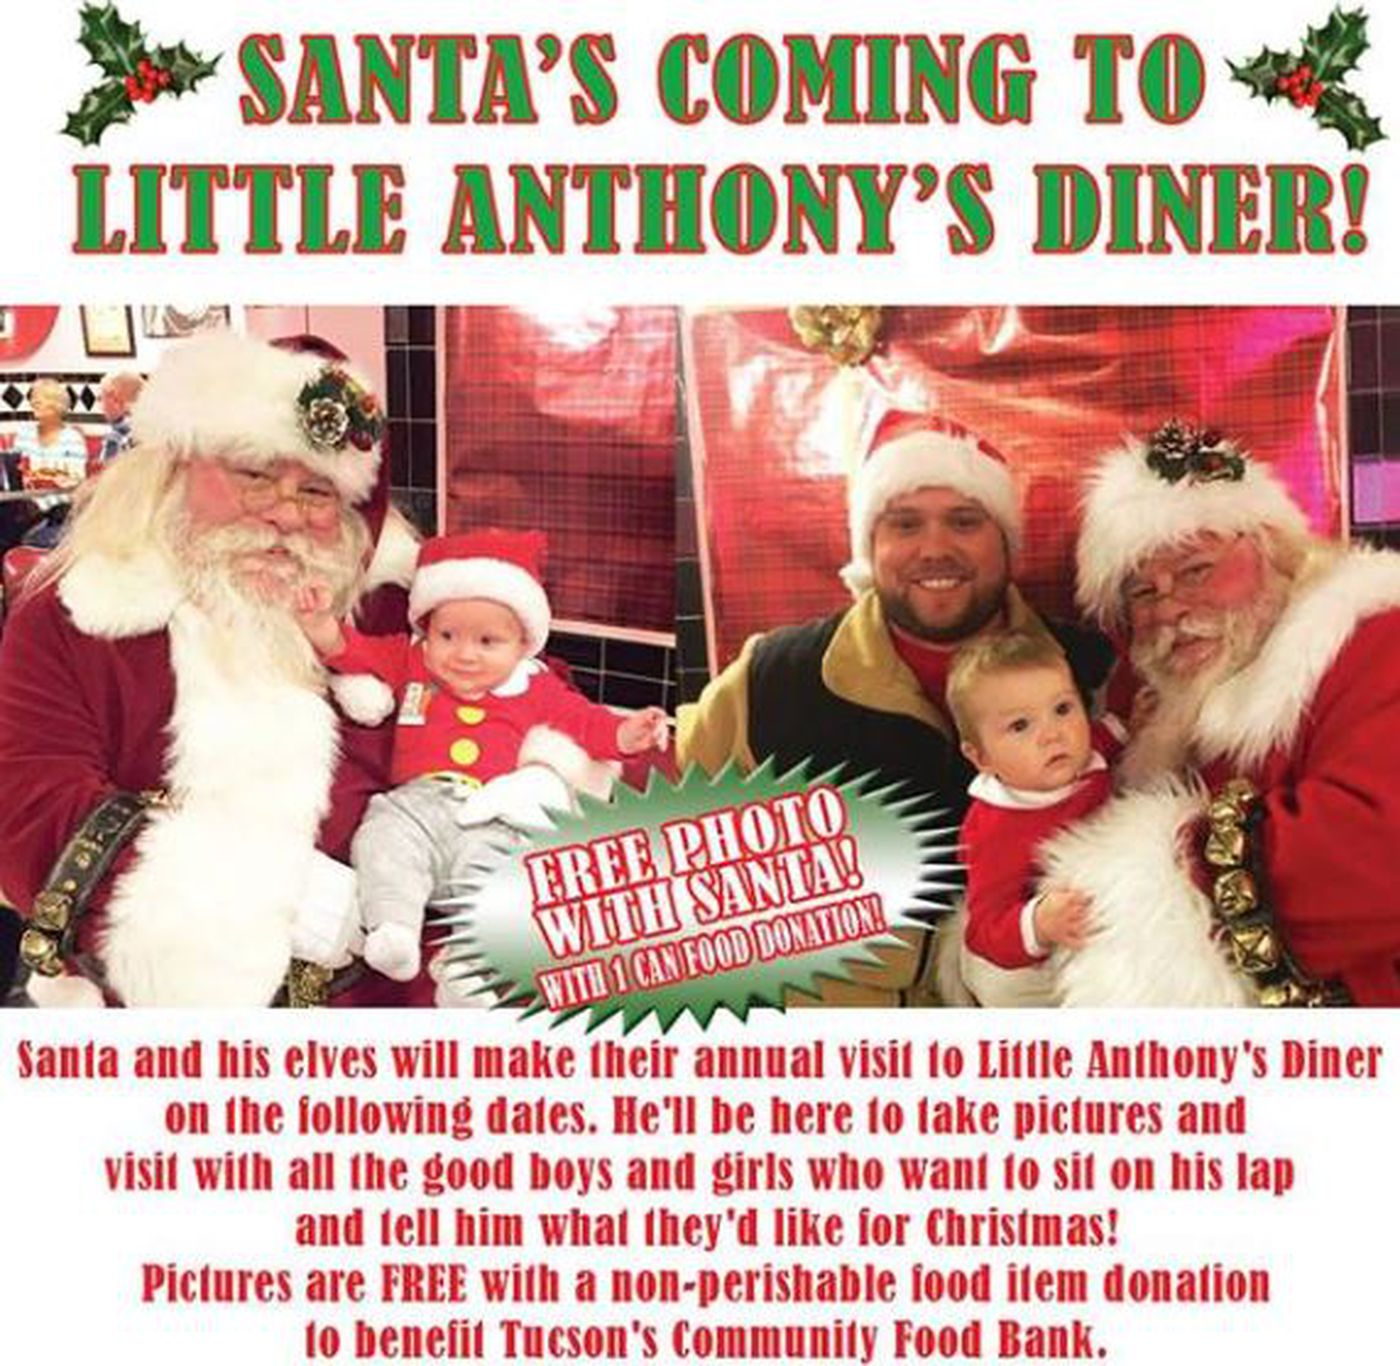 (Source: Little Anthony's Diner)